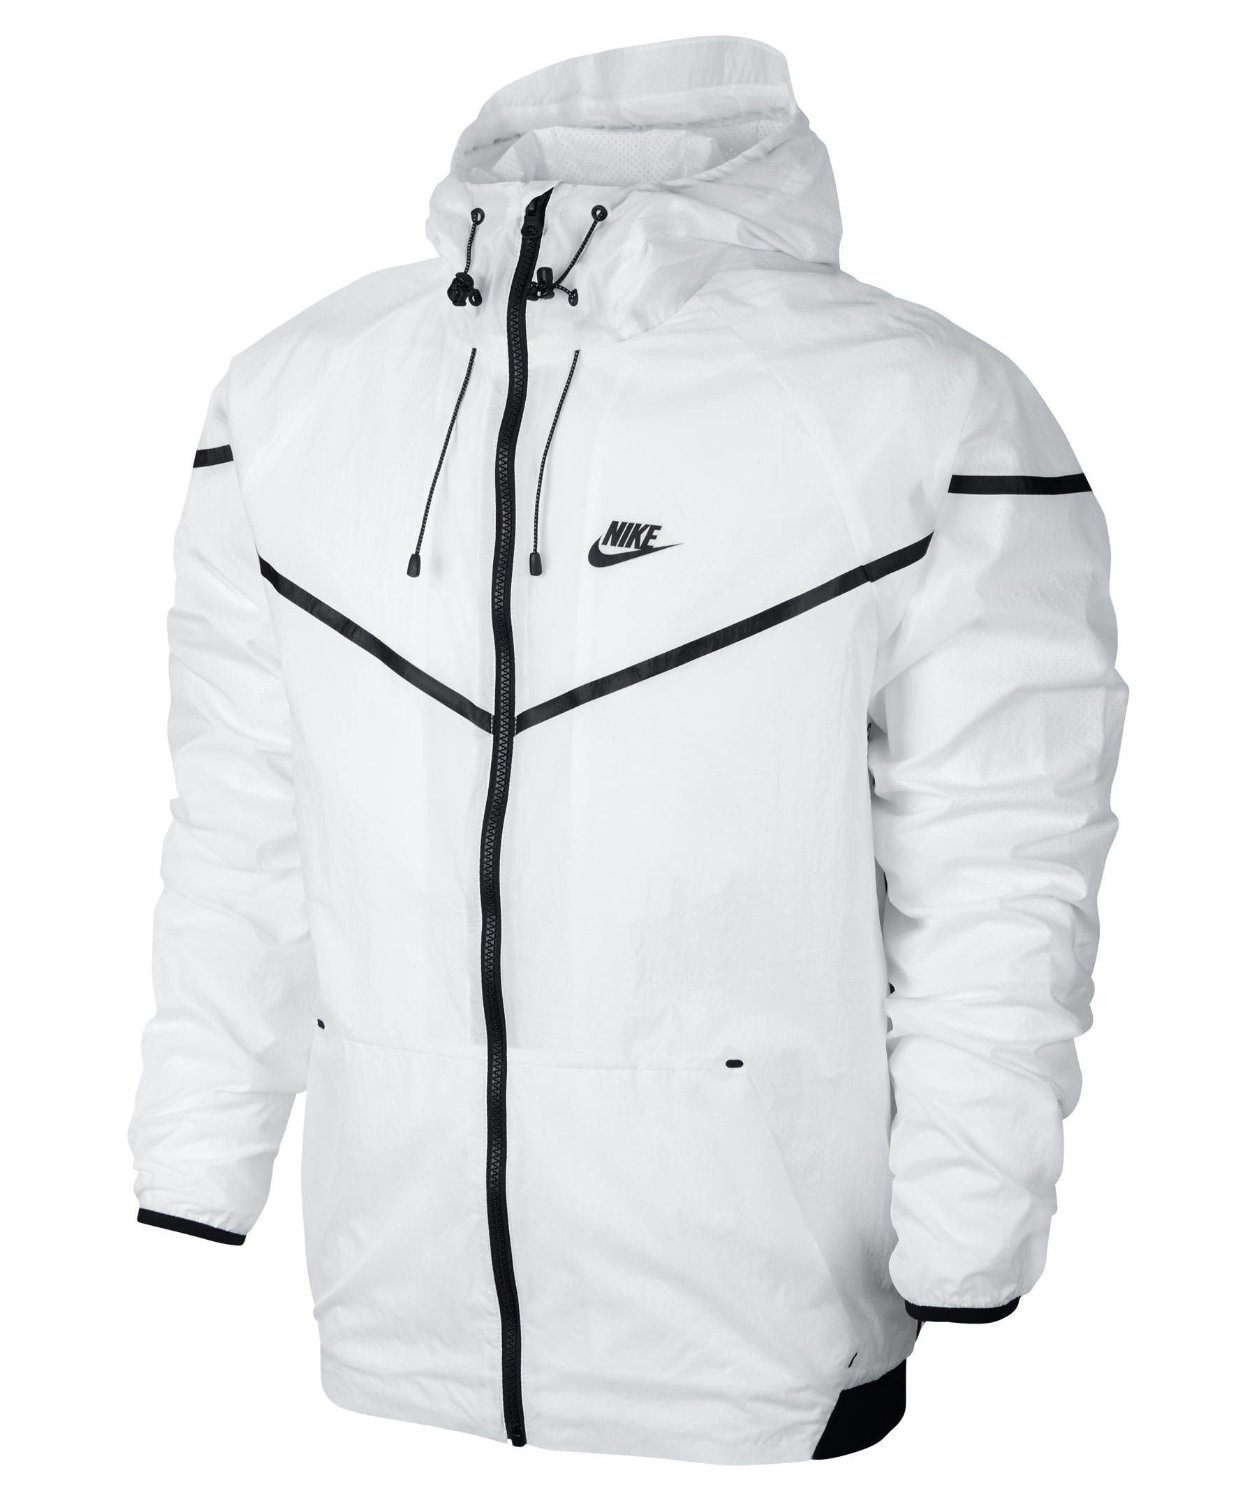 Nike Windrunner Men S Jacket Black And White English